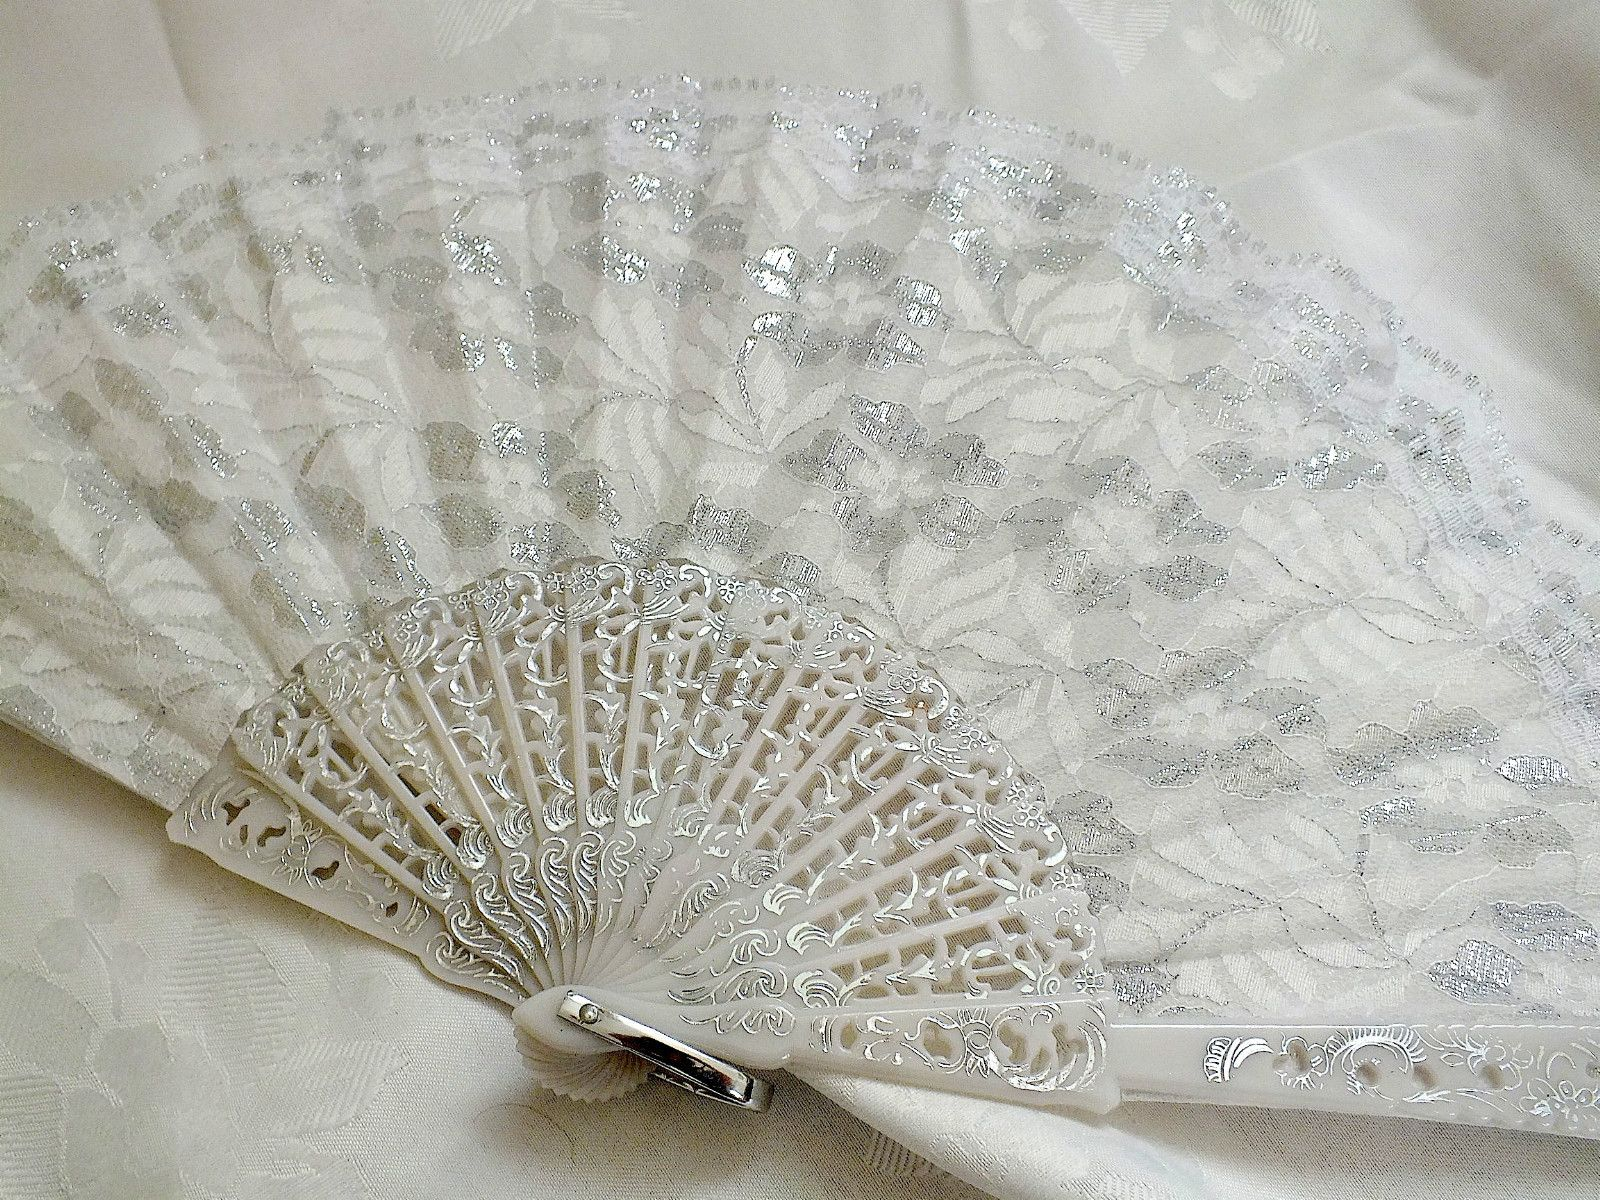 168 best Vintage fans images on Pinterest | Hand fans, Hair combs ...